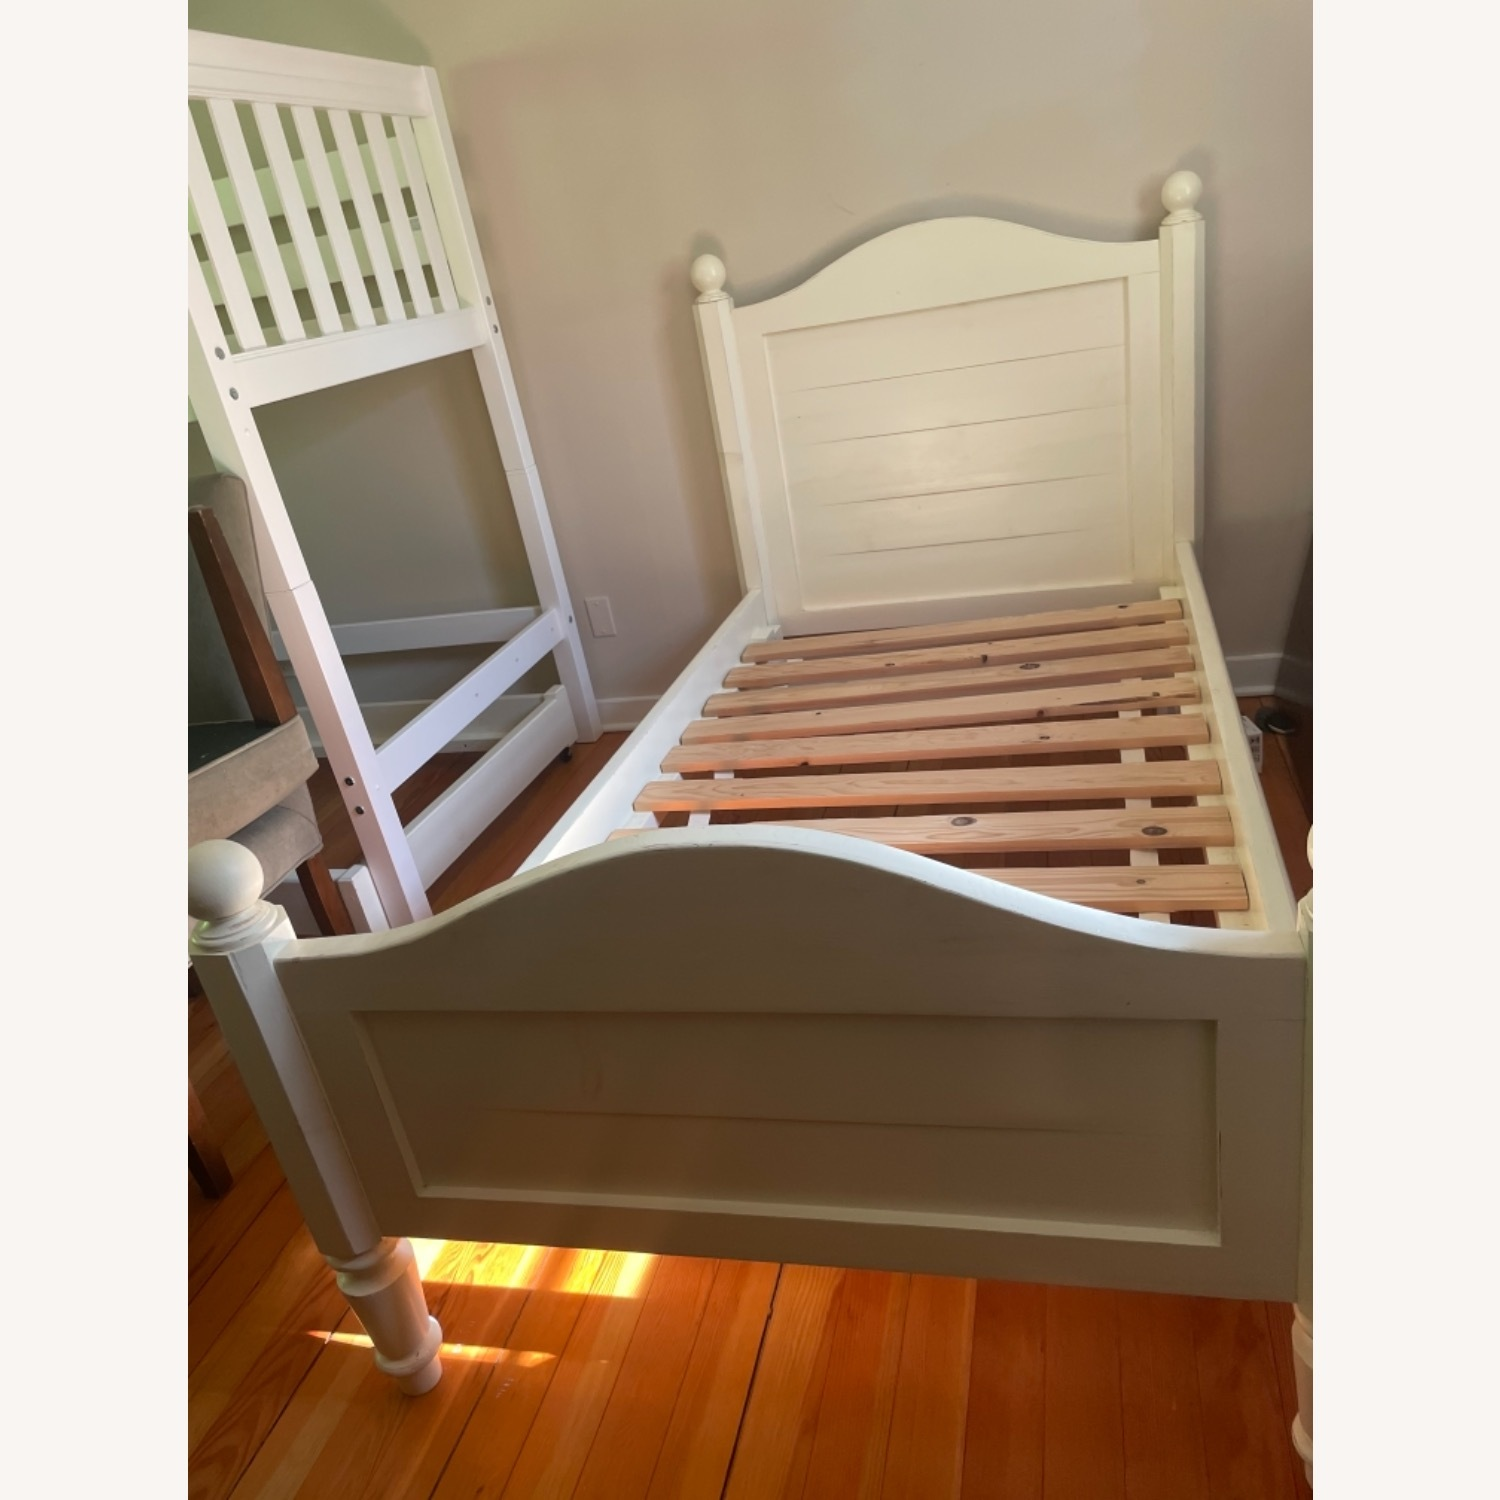 Land of Nod Twin bed with Trundle - image-3